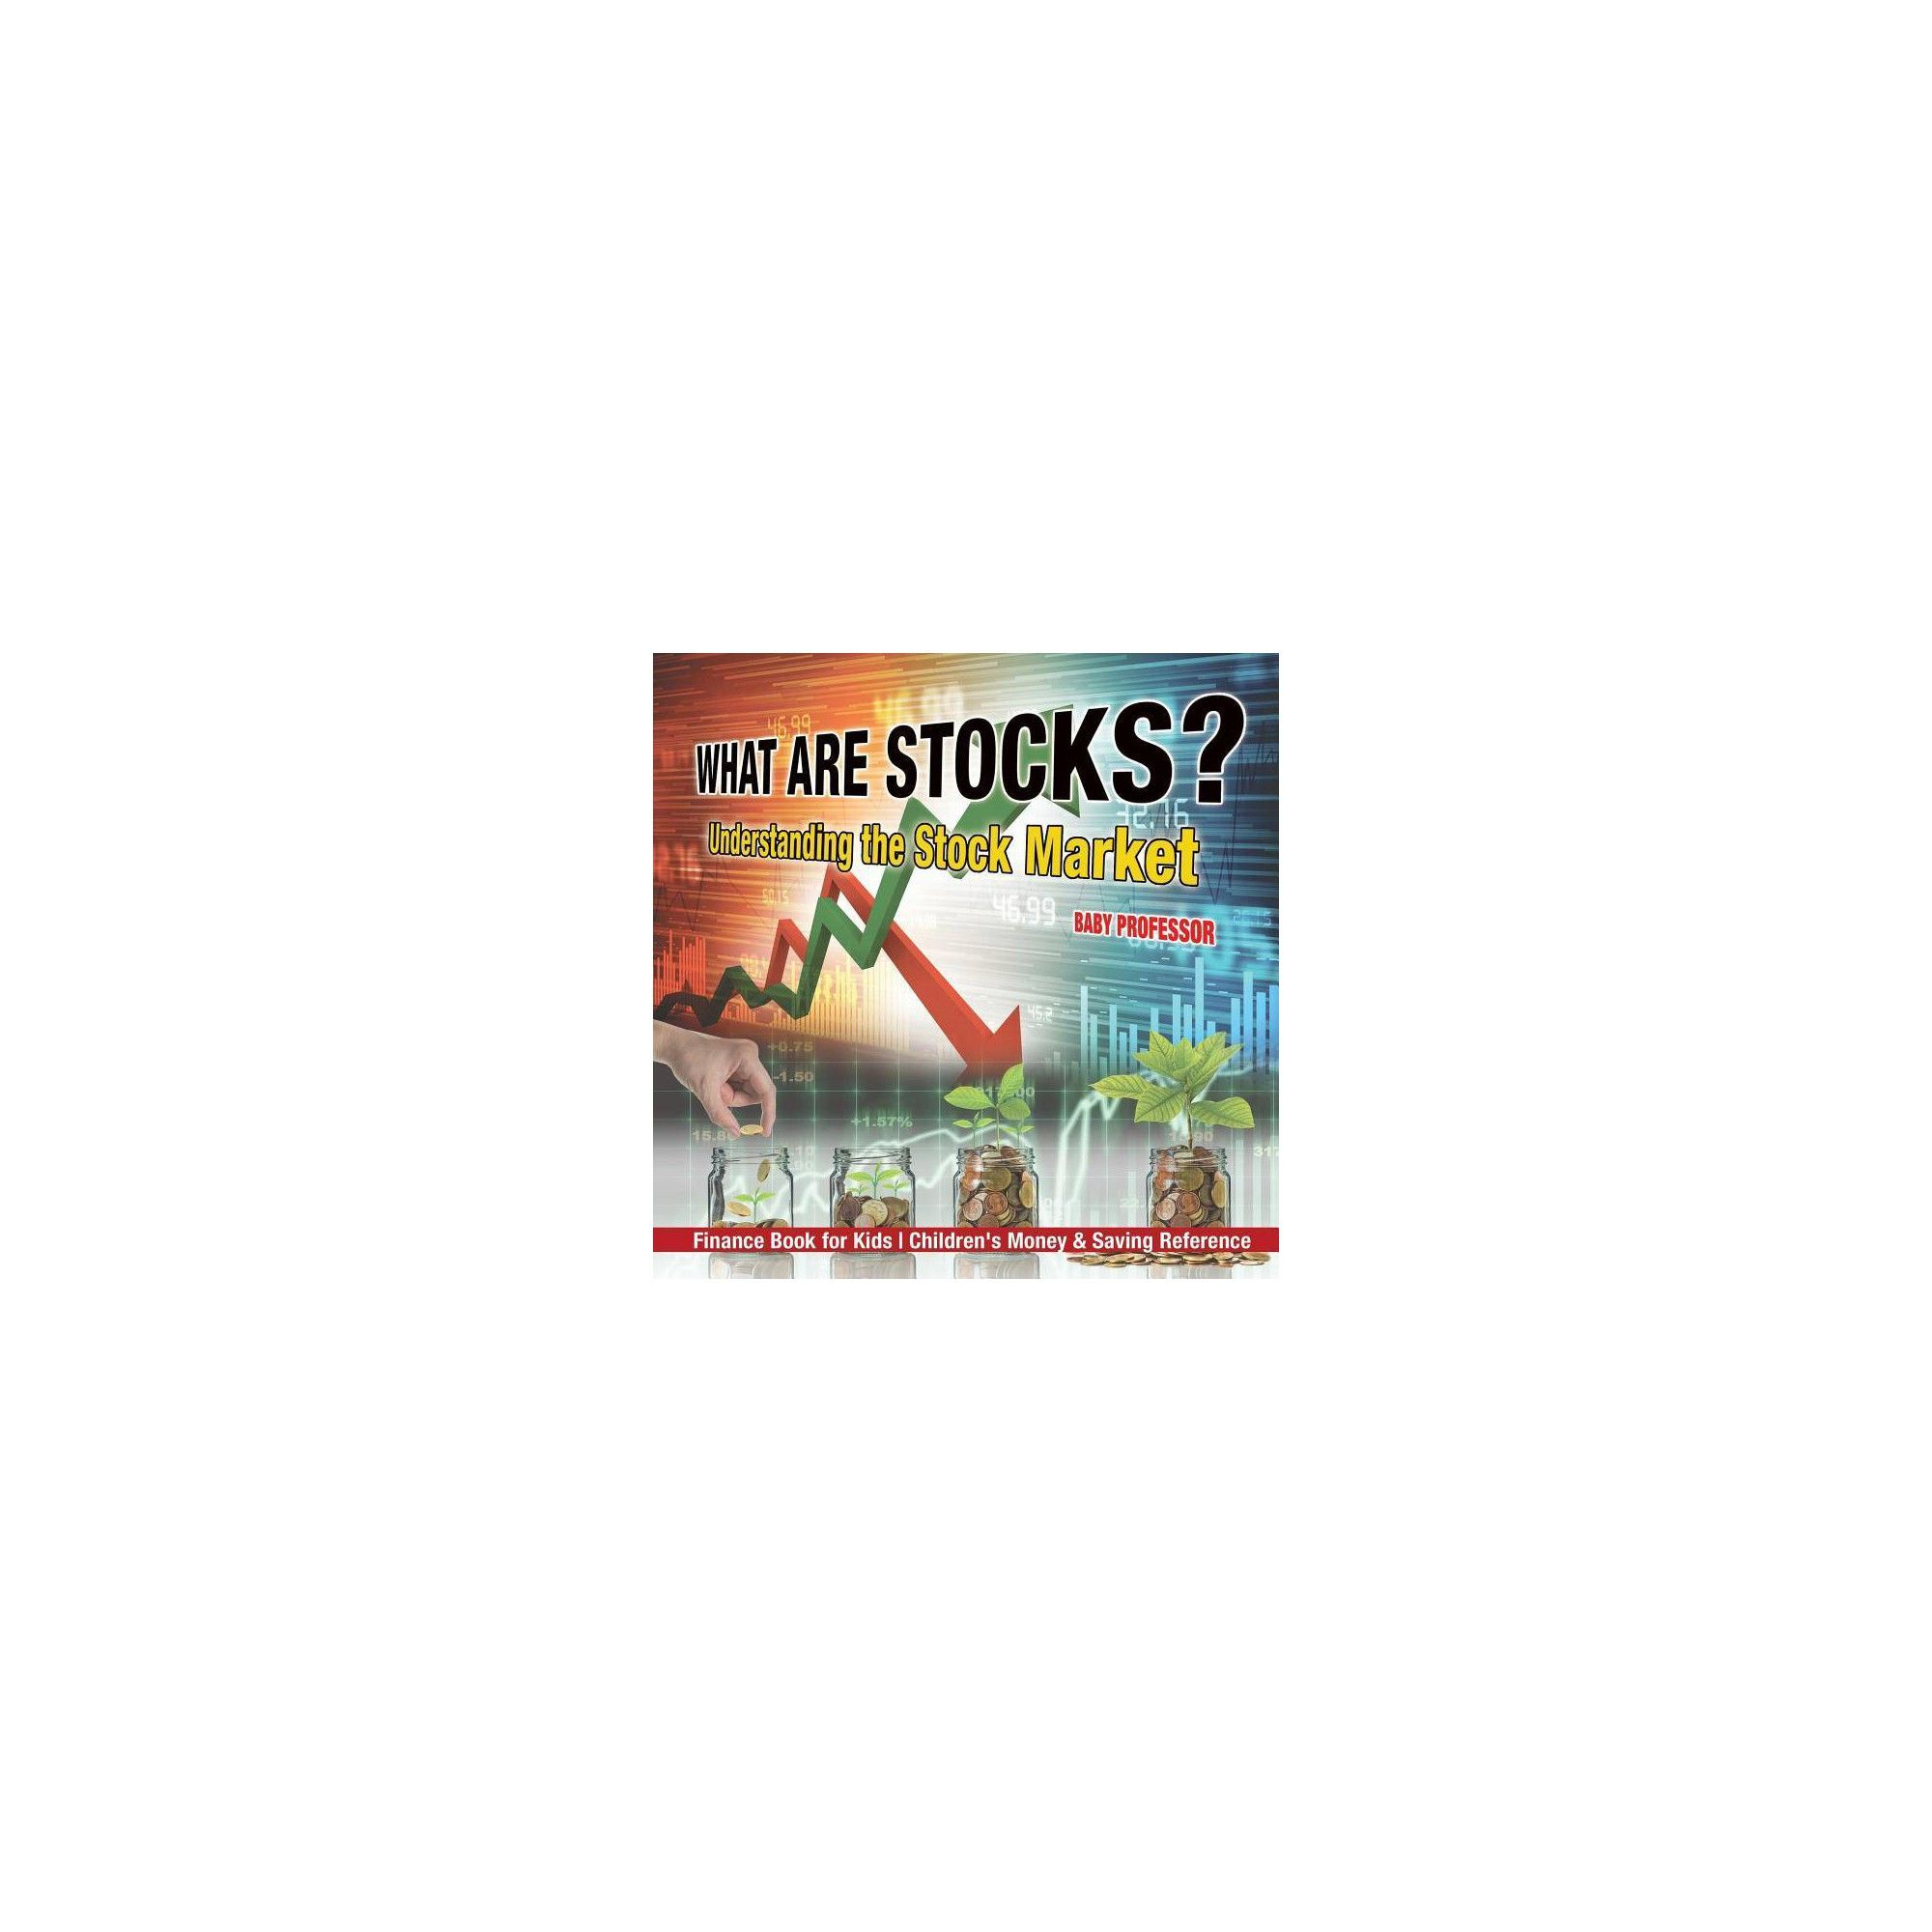 Finance Book for Kids Understanding the Stock Market What are Stocks Childrens Money /& Saving Reference